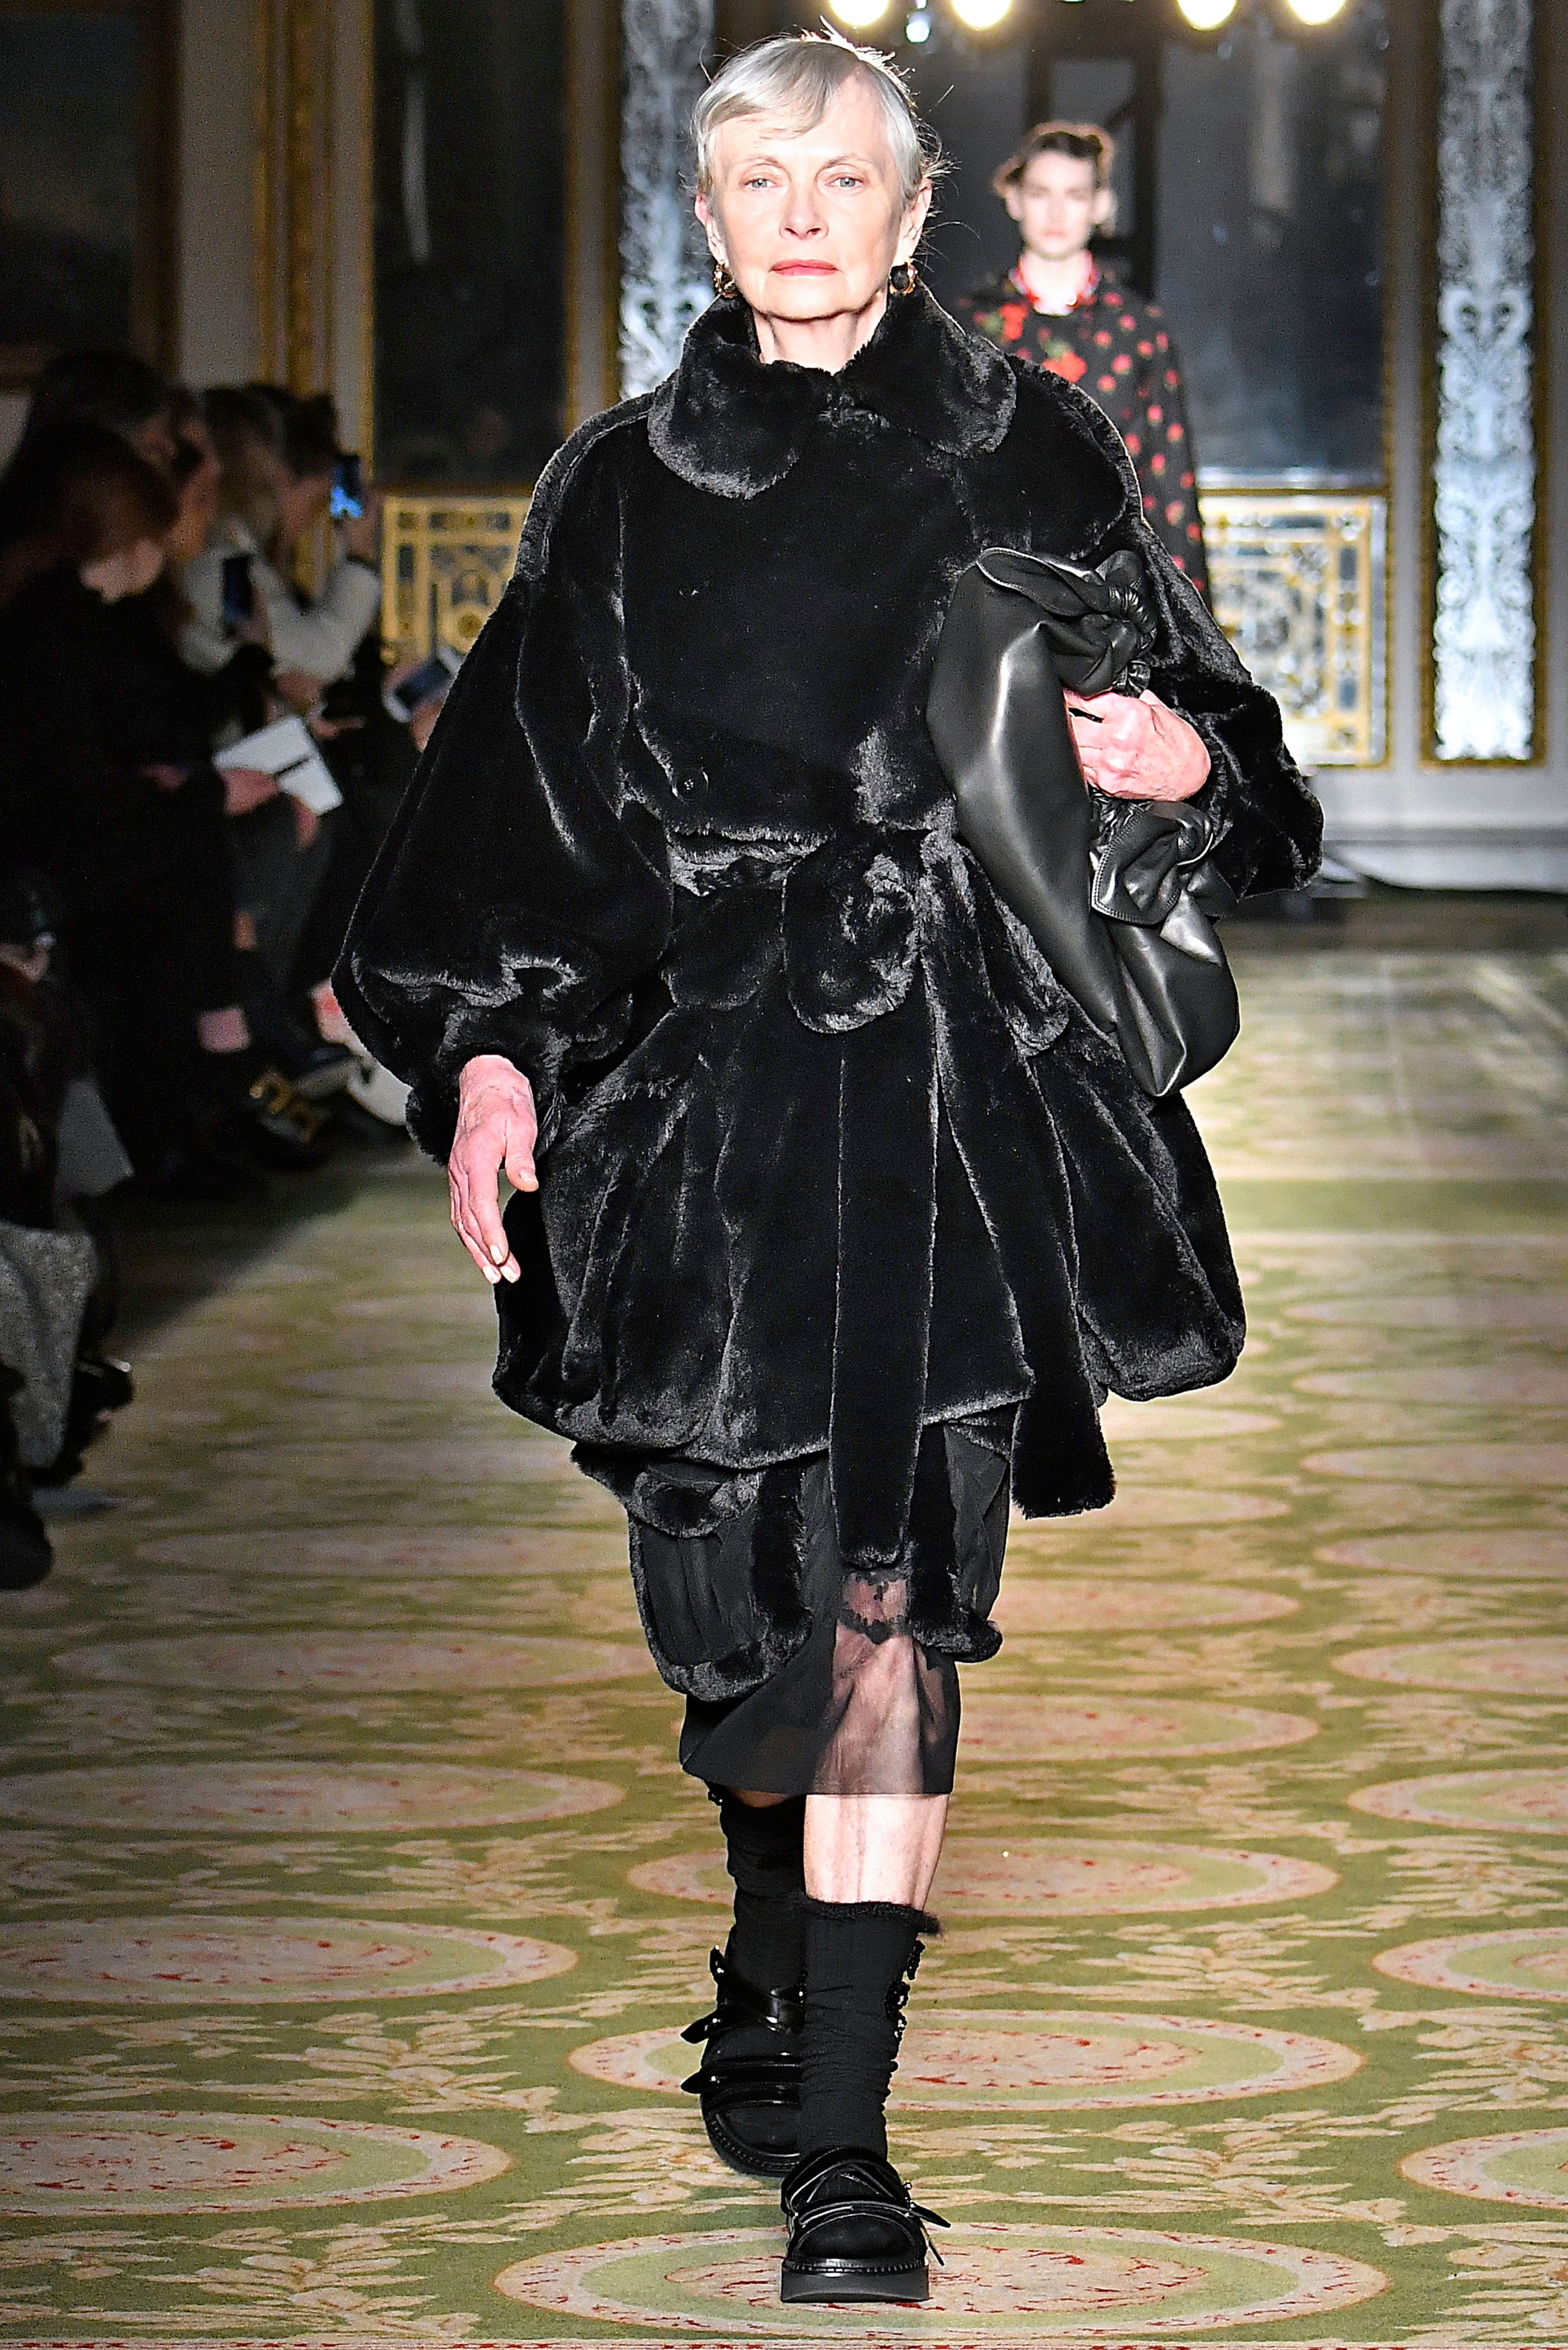 LONDON, ENGLAND - FEBRUARY 18: A model walks the runway at the Simone Rocha Ready to Wear Fall Winter 2017-2018 fashion show during the London Fashion Week February 2017 collections on February 18, 2017 in London, England. (Photo by Victor VIRGILE/Gamma-Rapho via Getty Images)